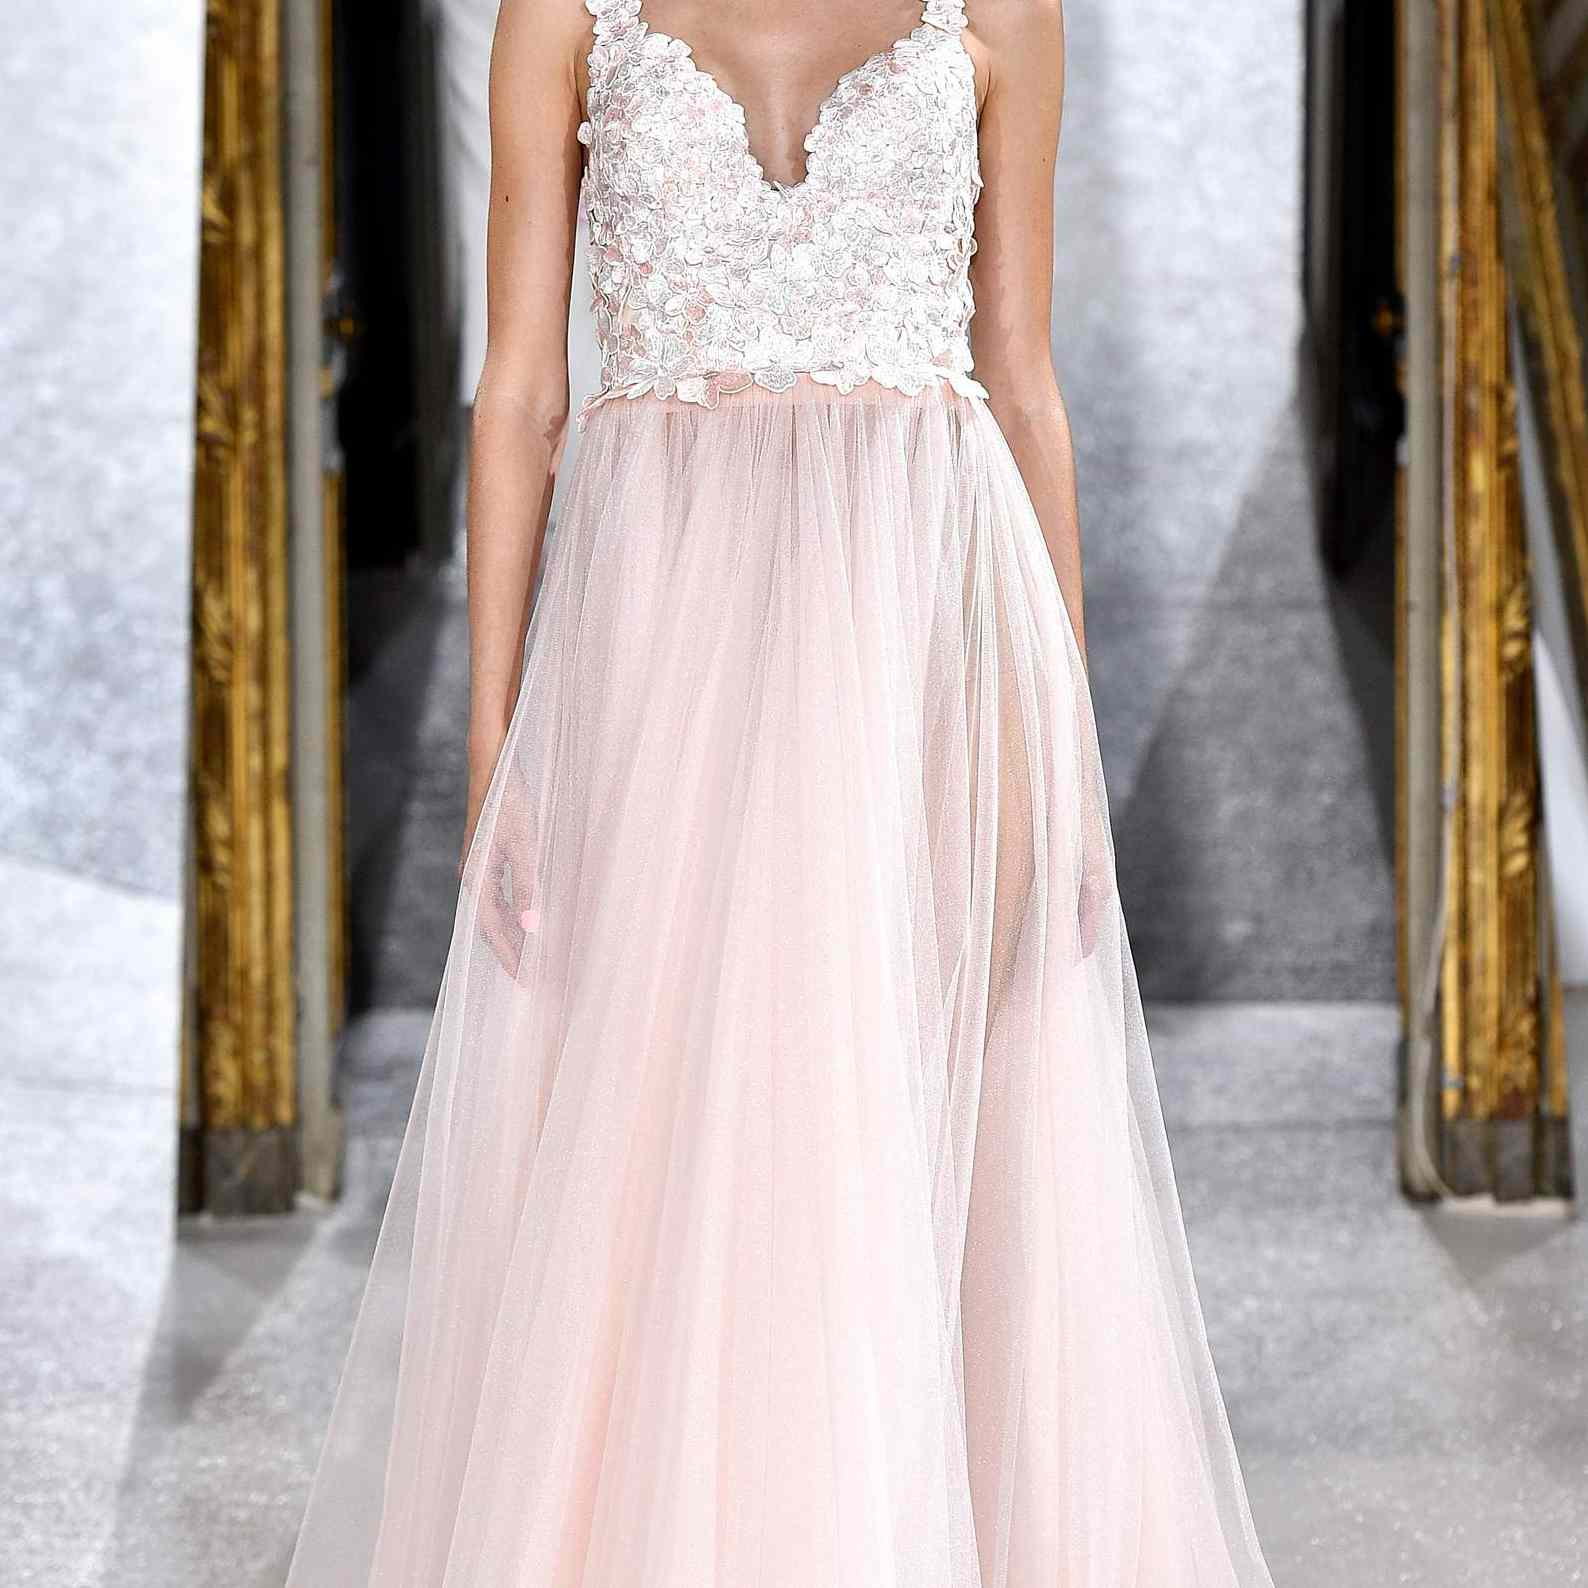 The Best 35 Colorful Wedding Dresses Of 2020,Below The Knee Dresses For Wedding Guests